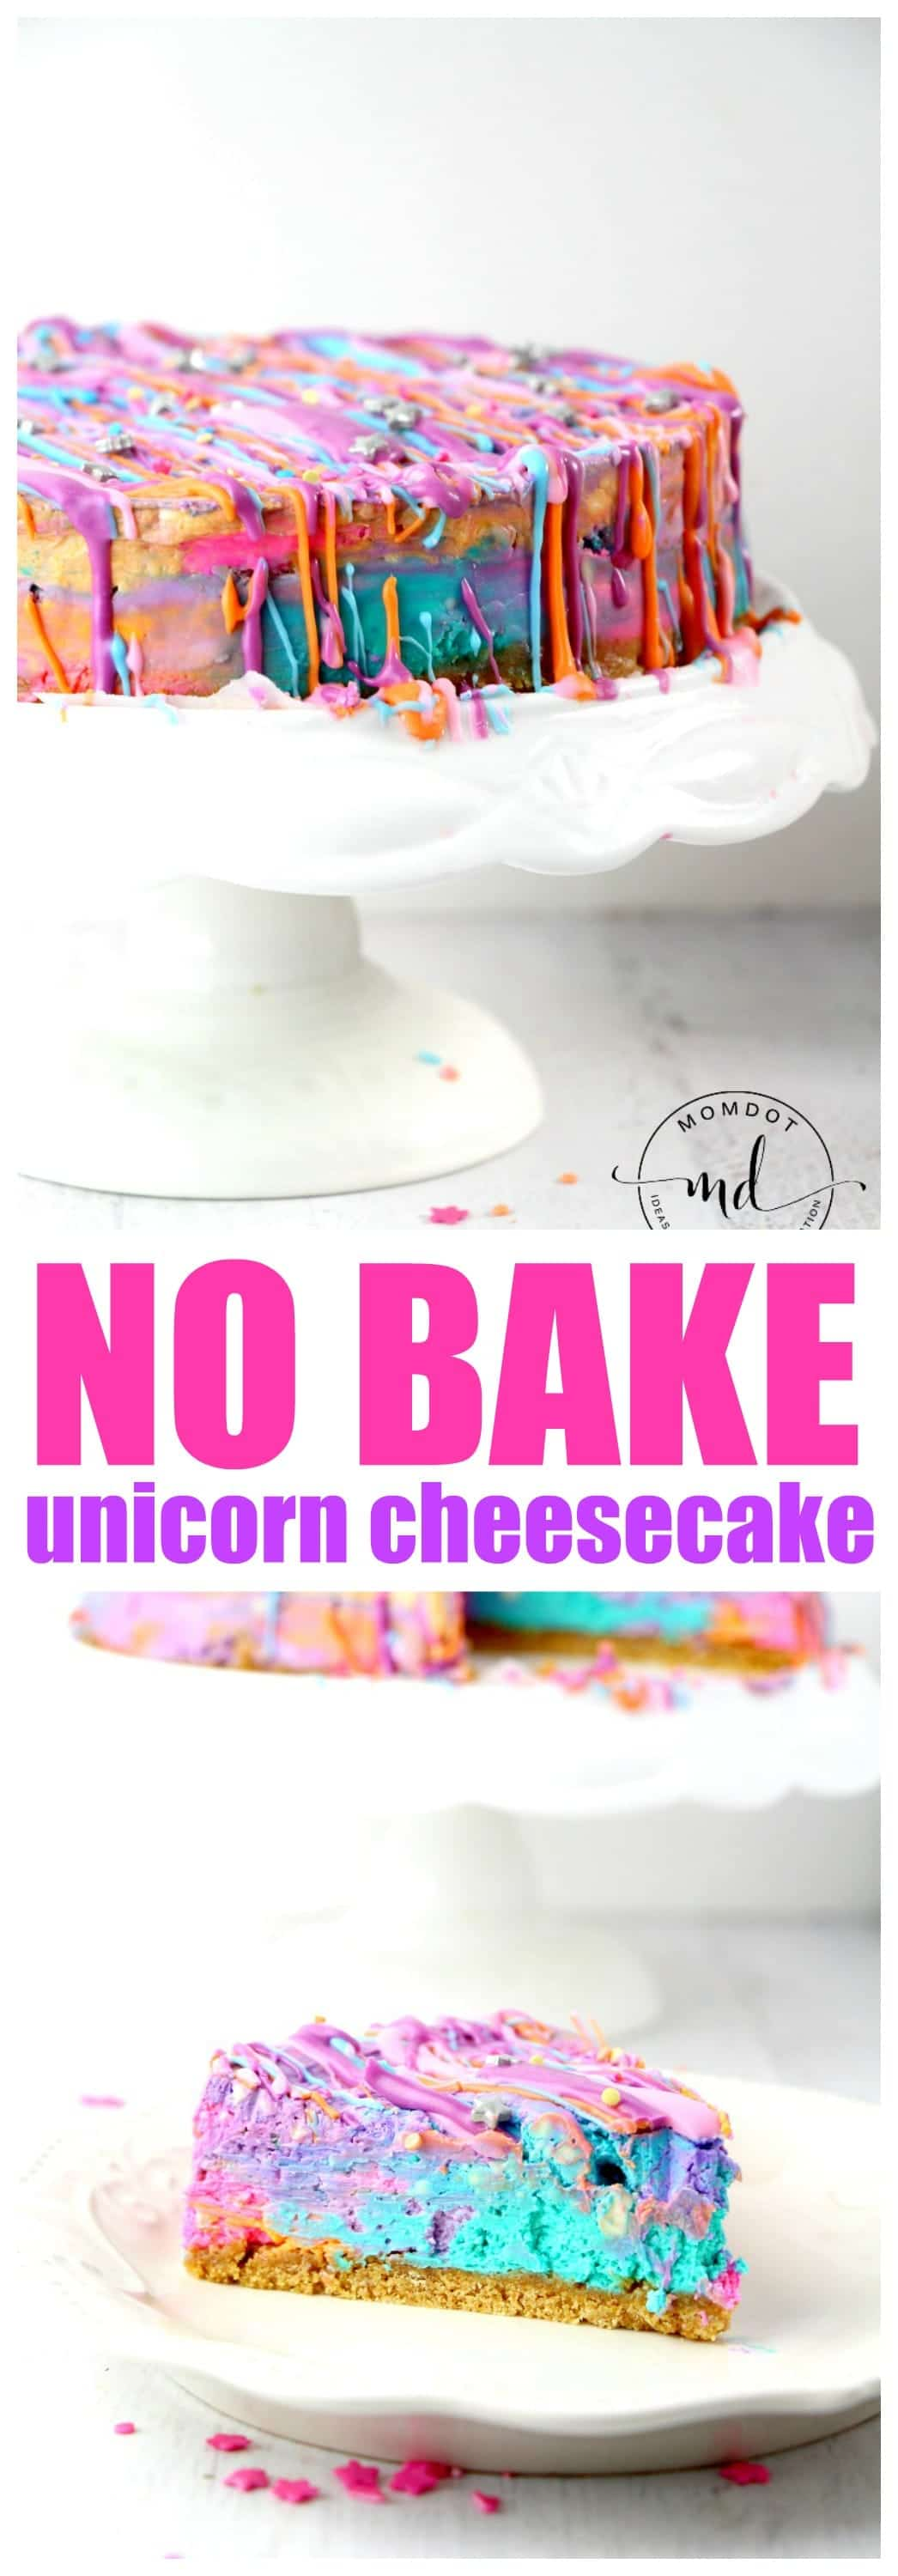 No Bake Unicorn Poop Cheesecake Recipe: Rainbow Tie Dye Cheesecake , gorgeous!